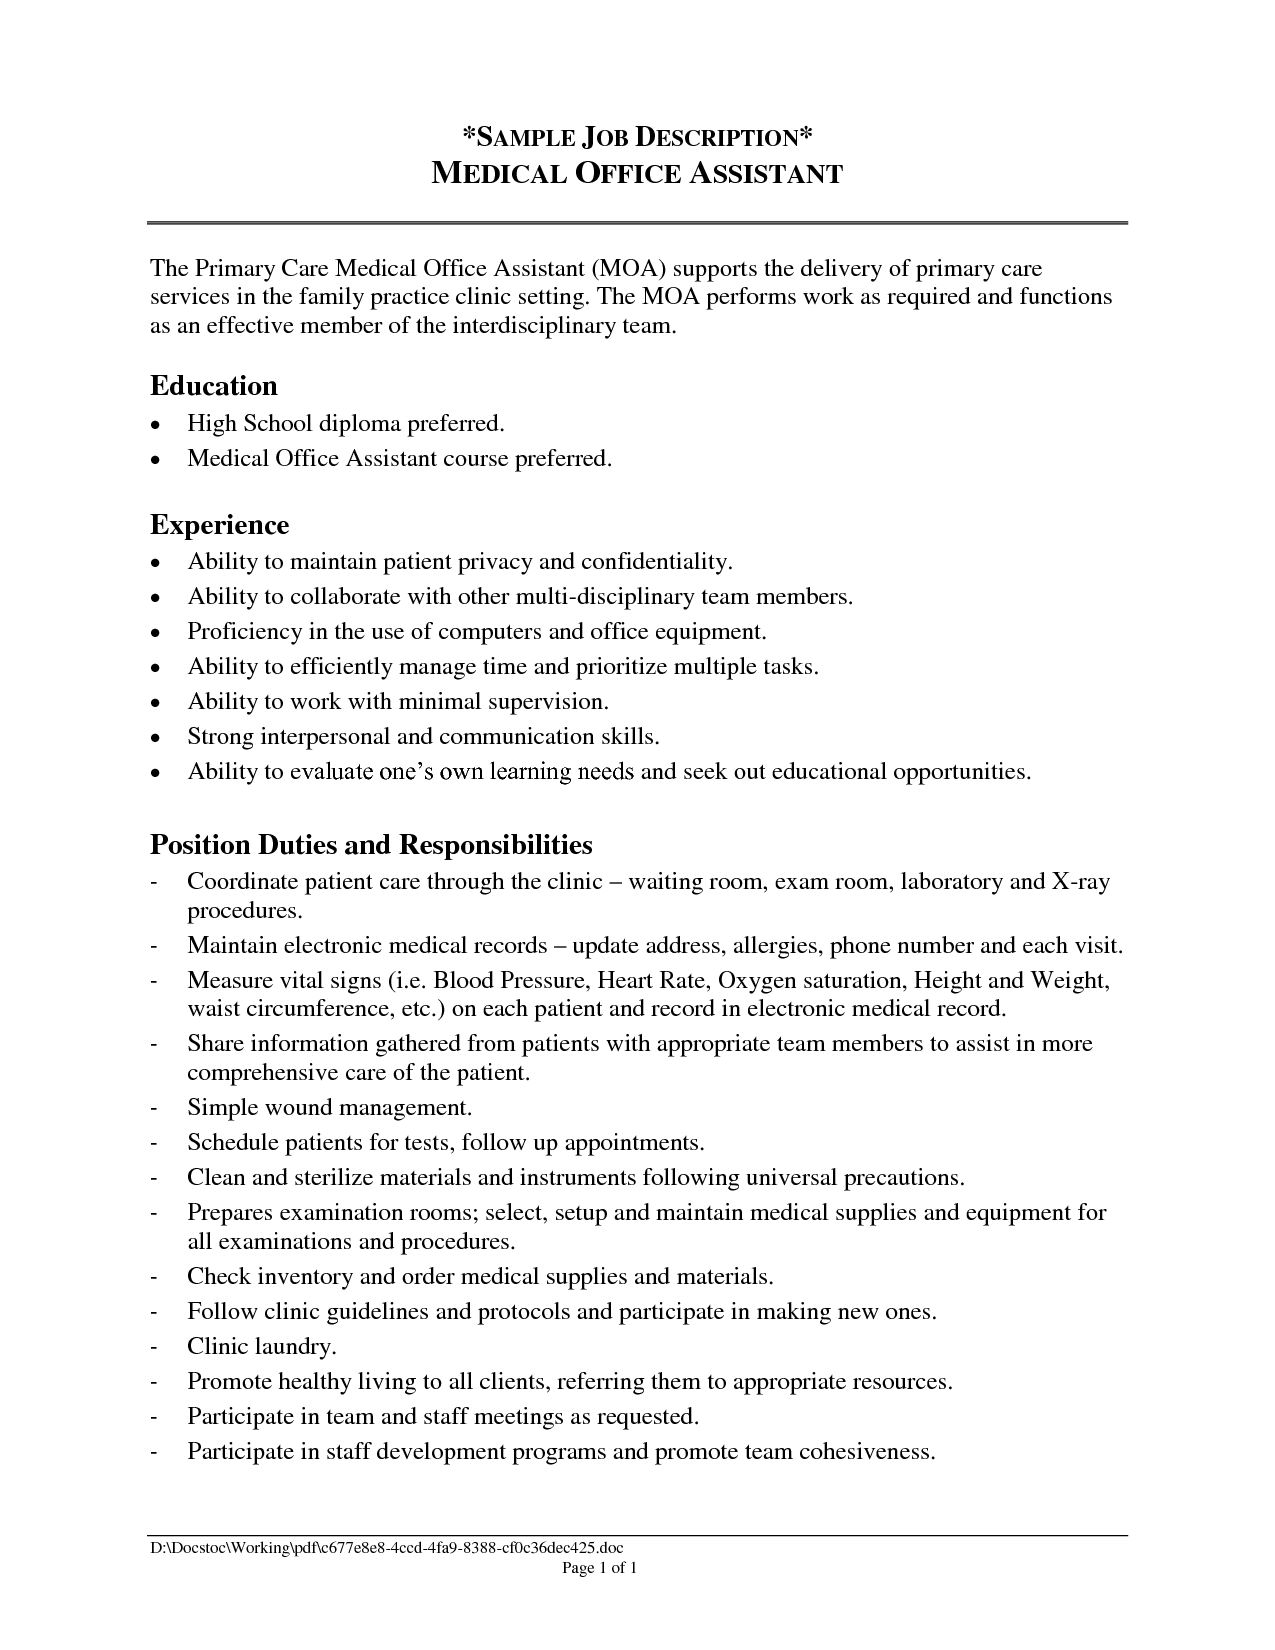 Administrative Assistant Job Description For a Resume medical office  assistant experience